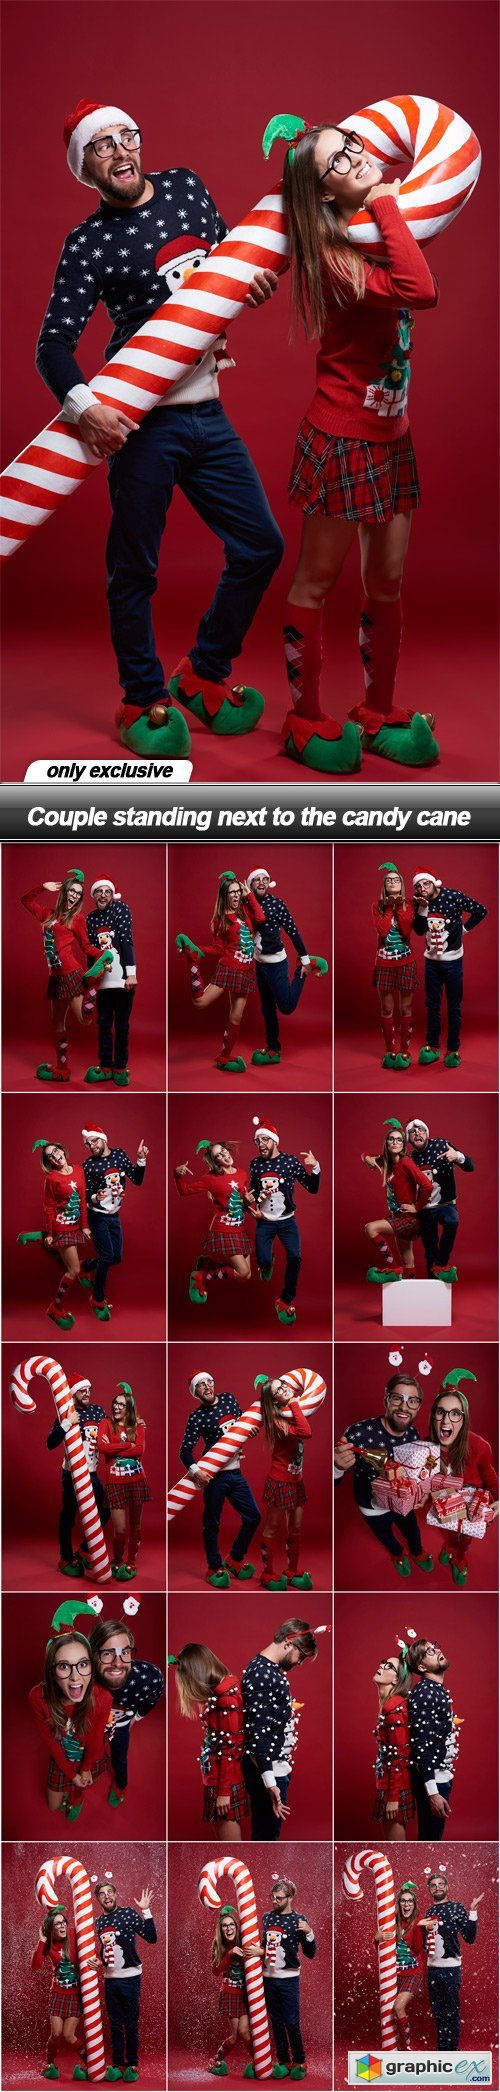 Couple standing next to the candy cane - 15 UHQ JPEG